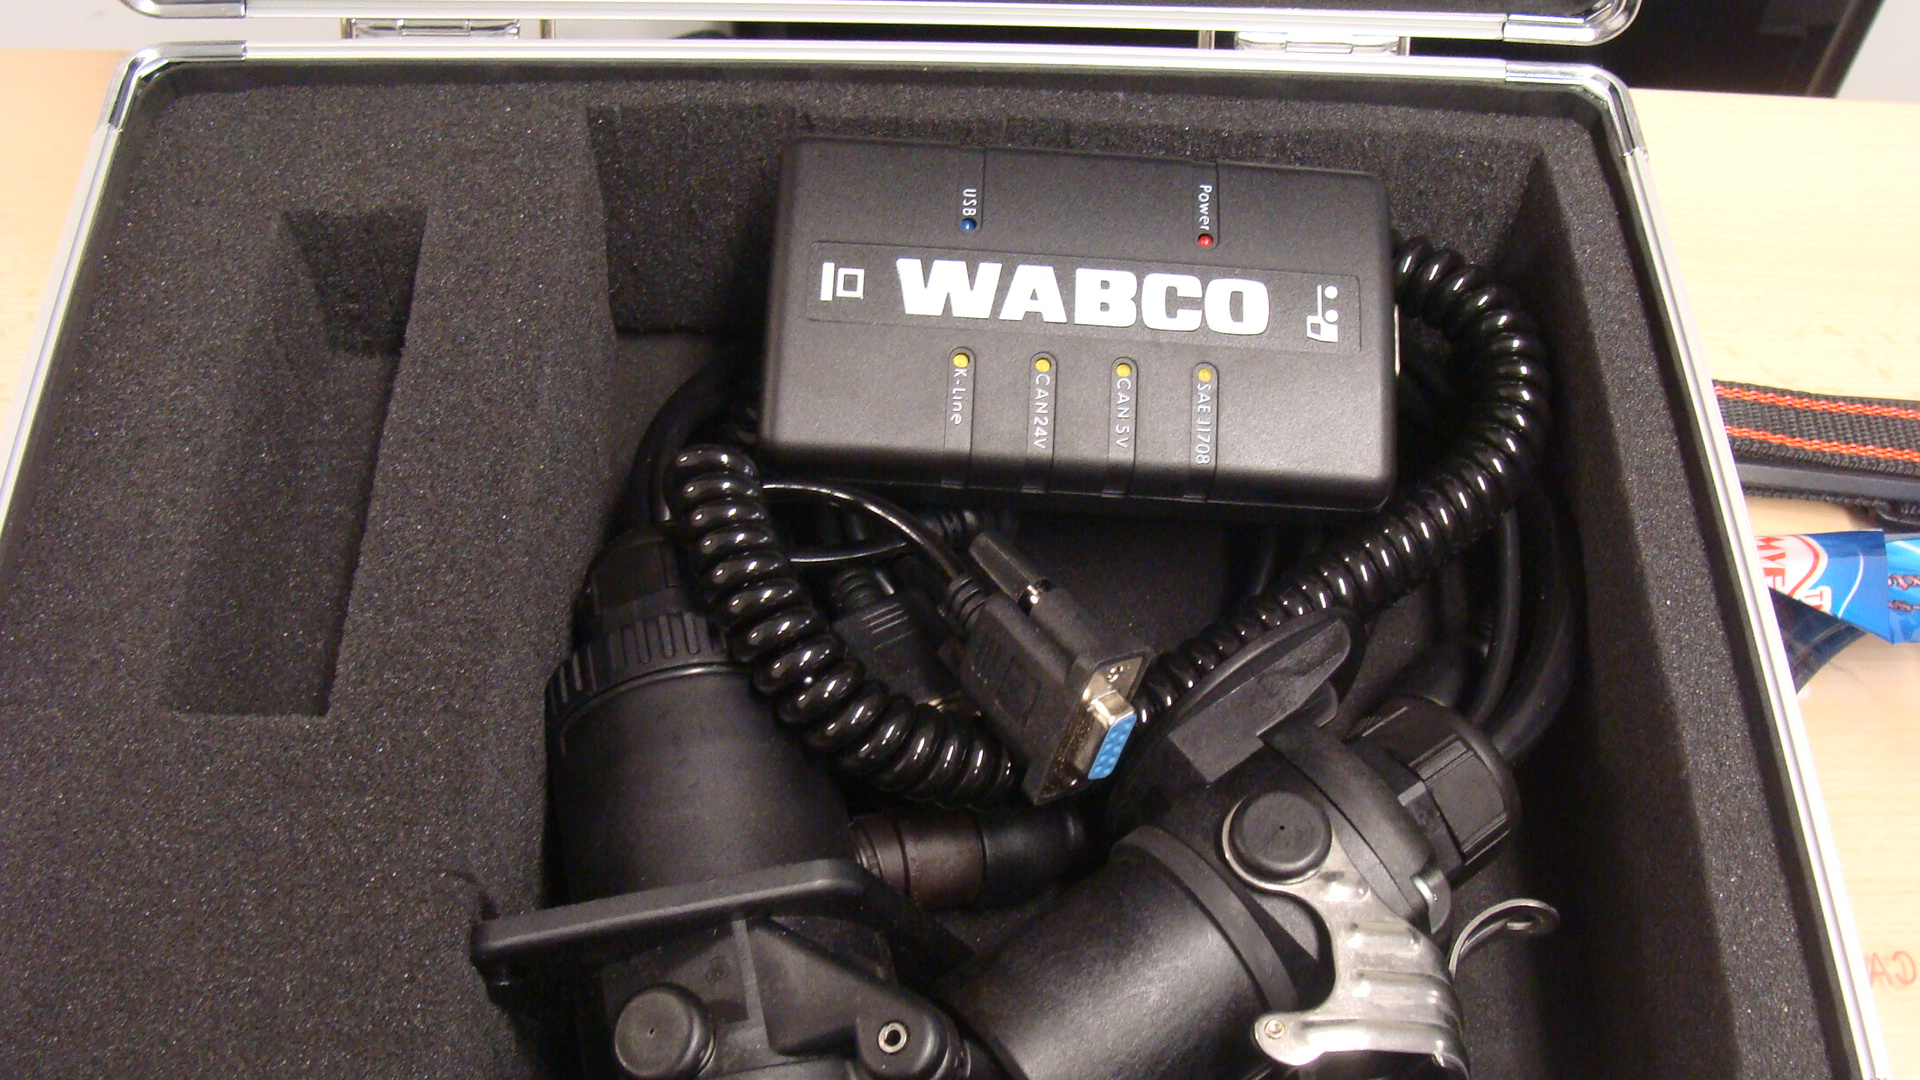 Wabco Truck and Trailer Kit